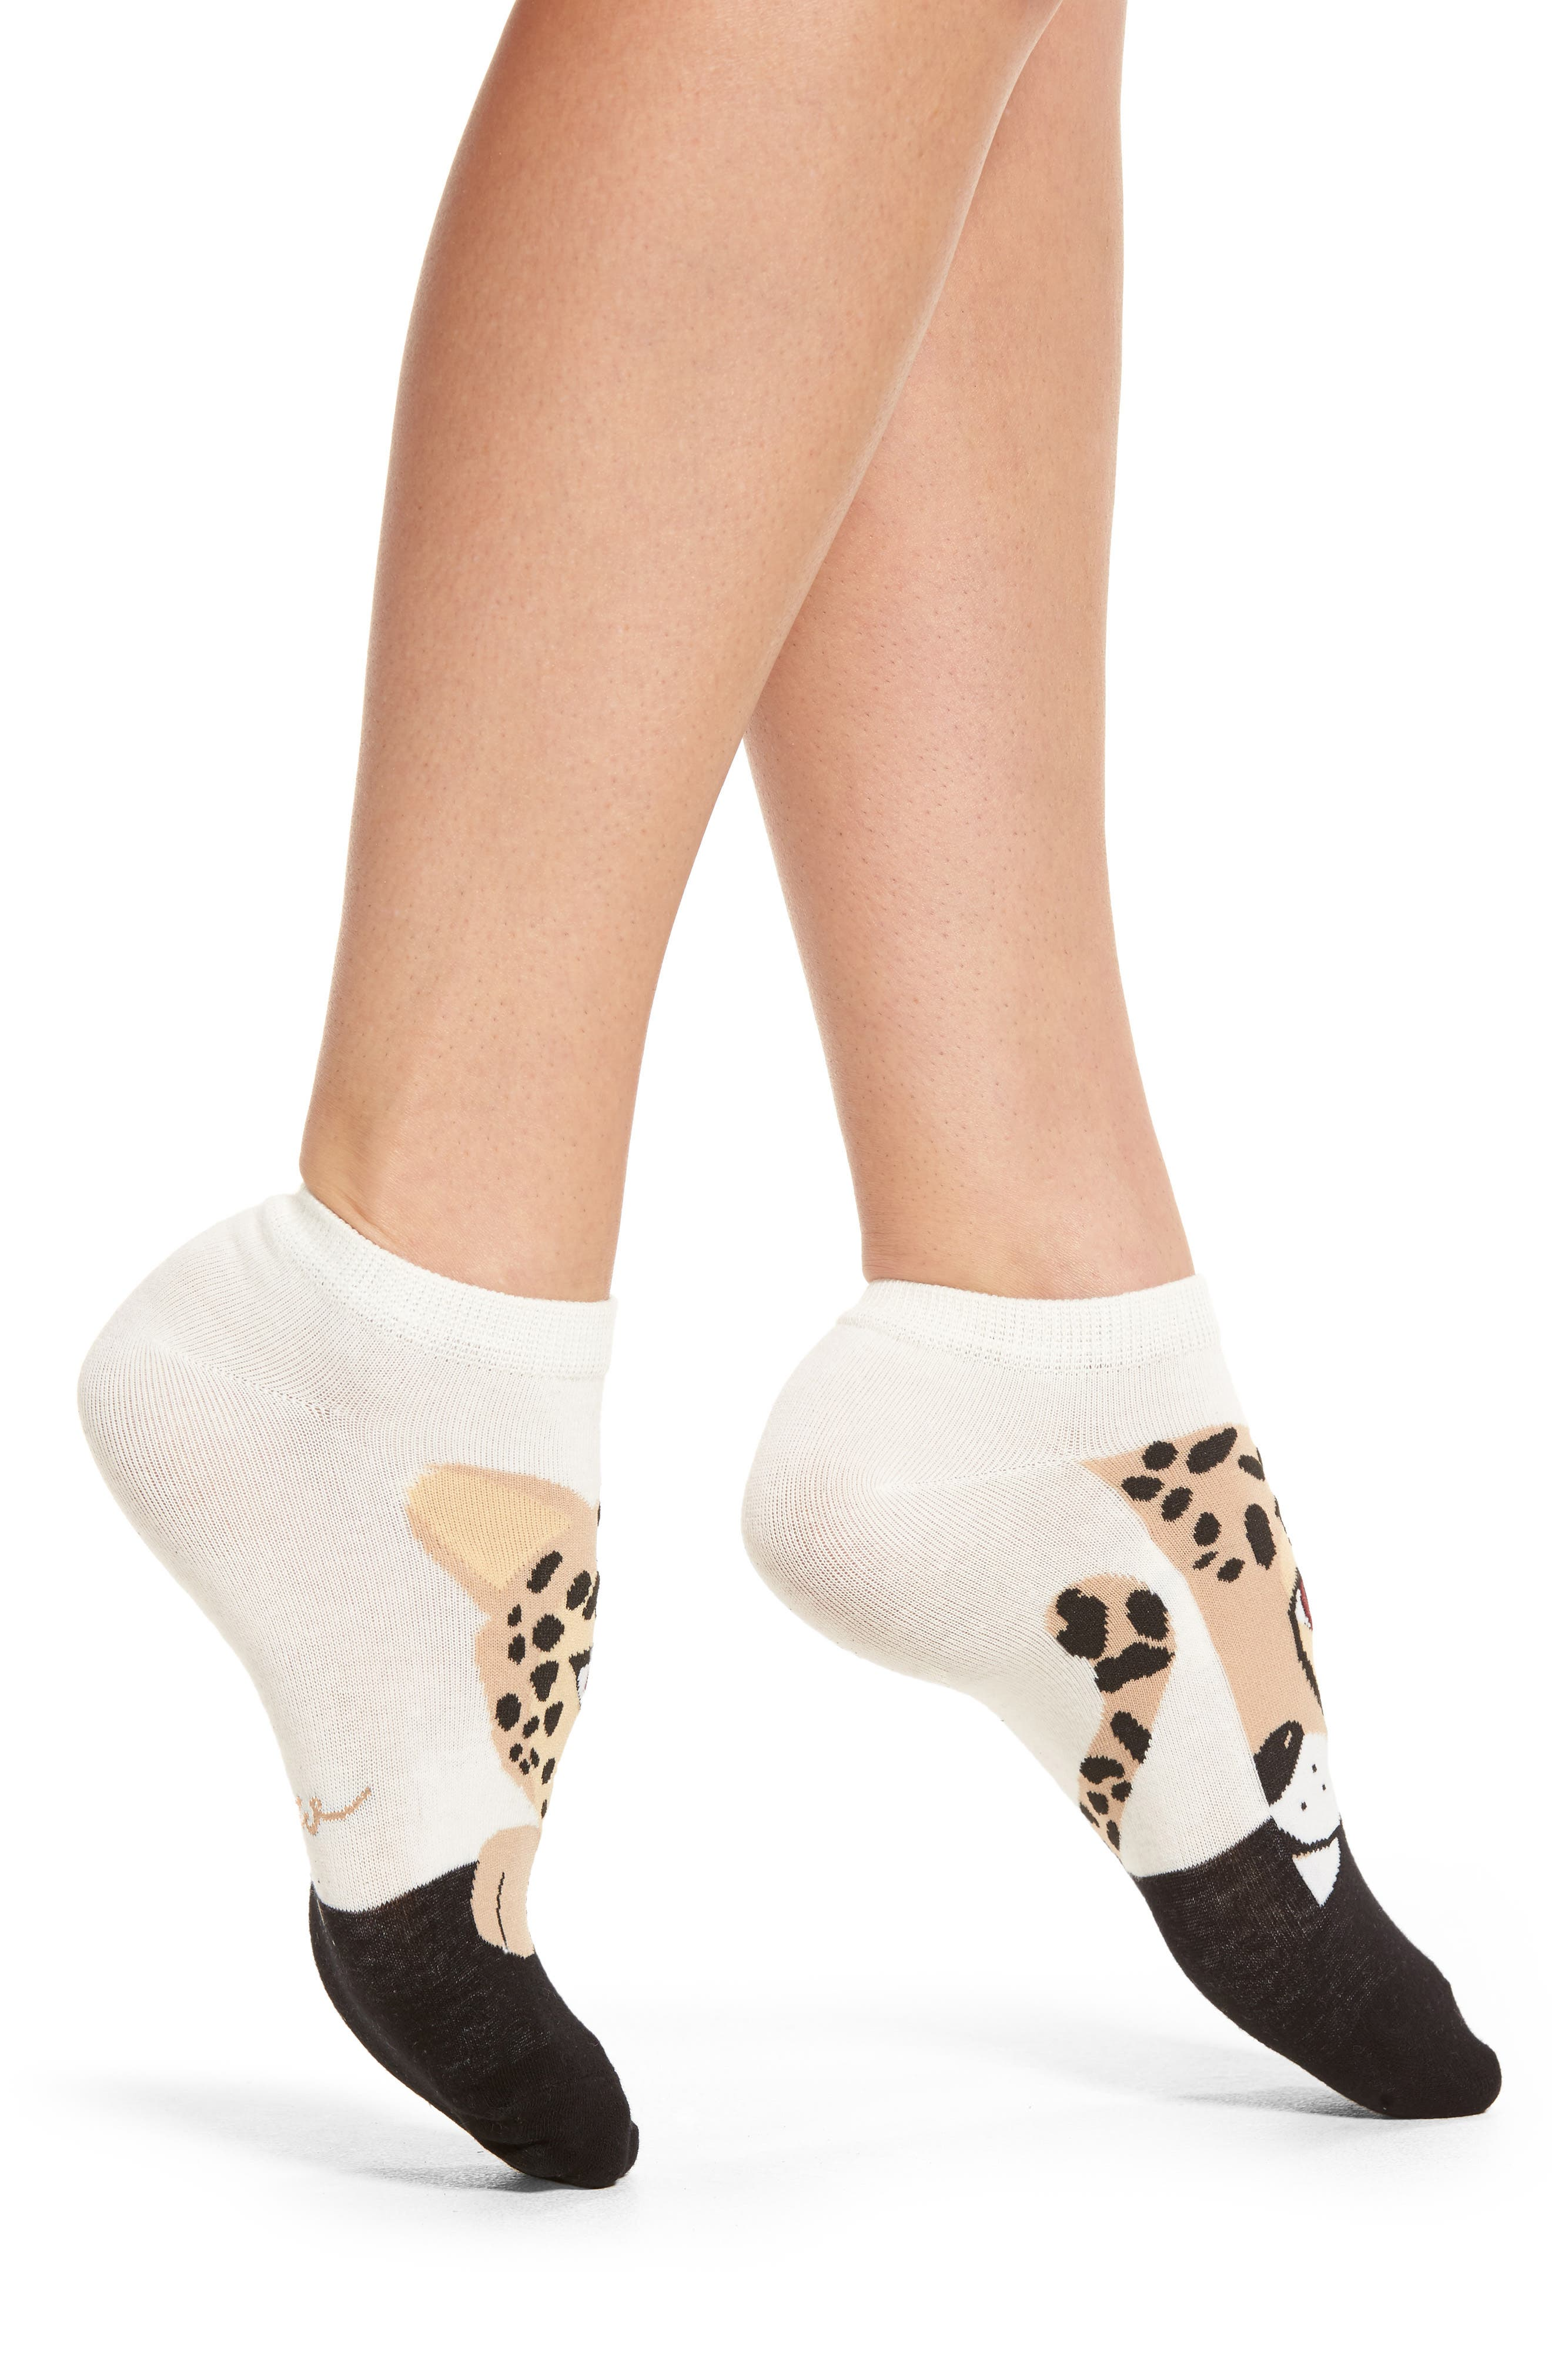 cheetah no-show socks,                             Main thumbnail 1, color,